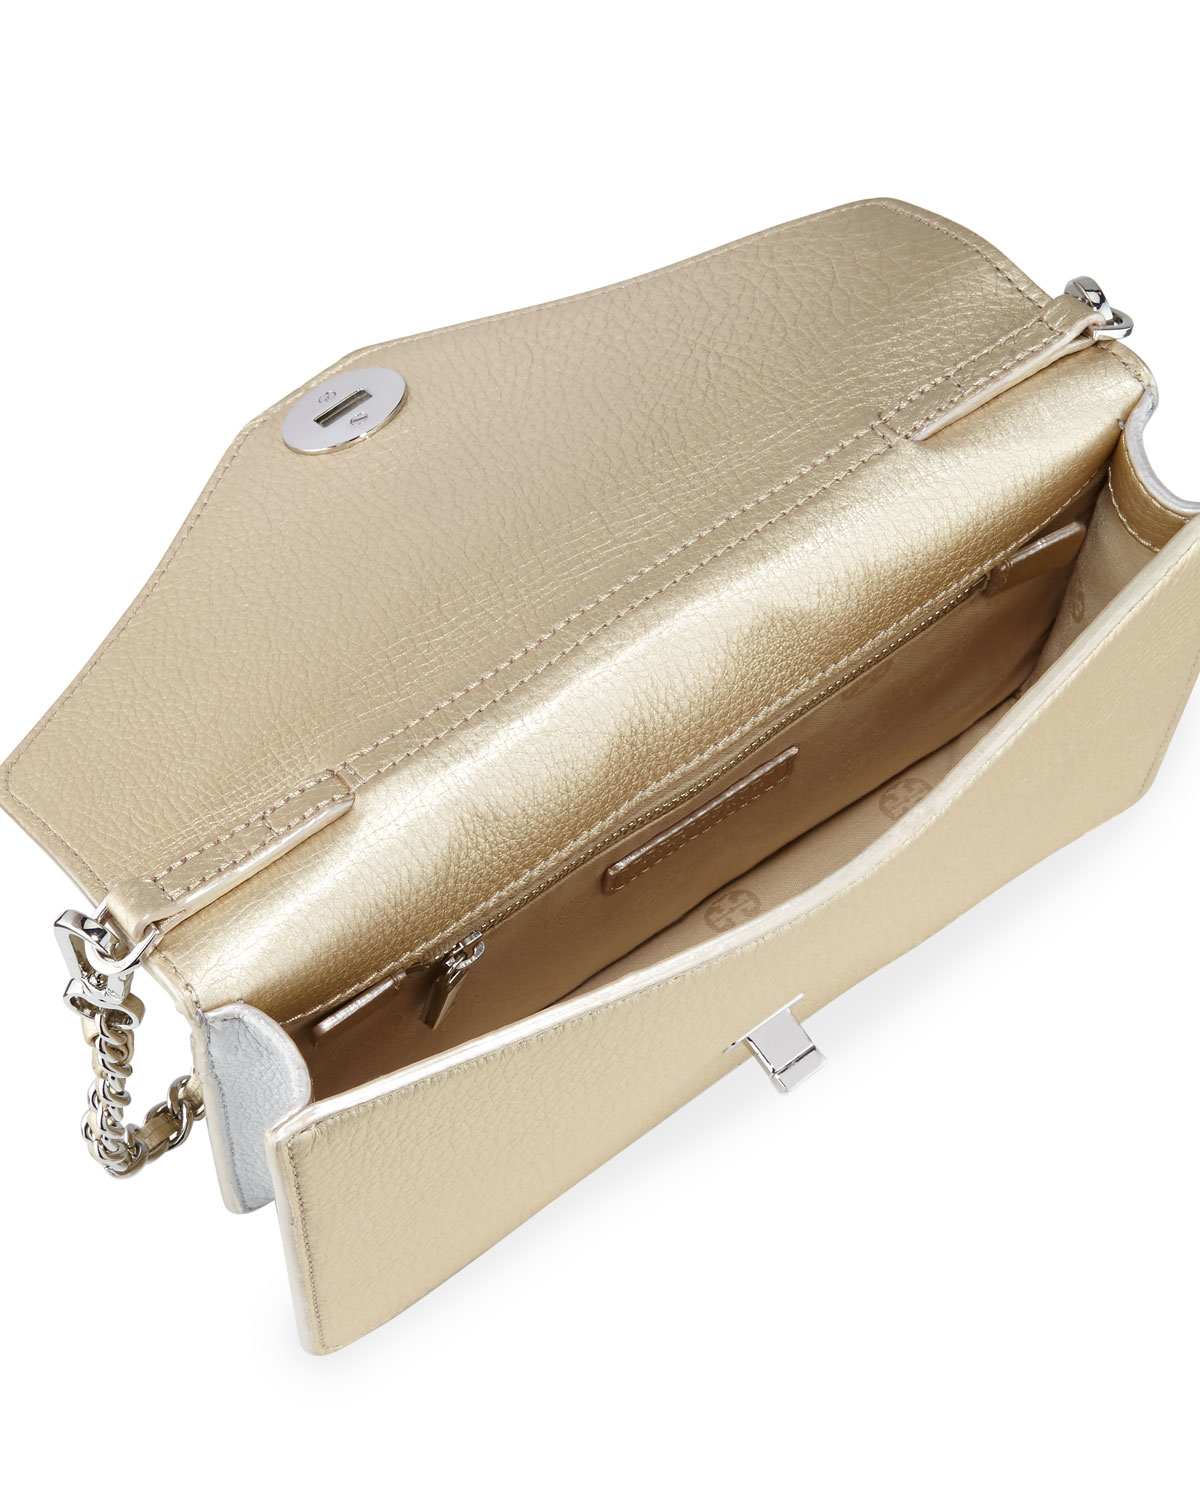 0a3fbd1107 Tory Burch Kira Metallic Leather Envelope Clutch Bag in Metallic - Lyst